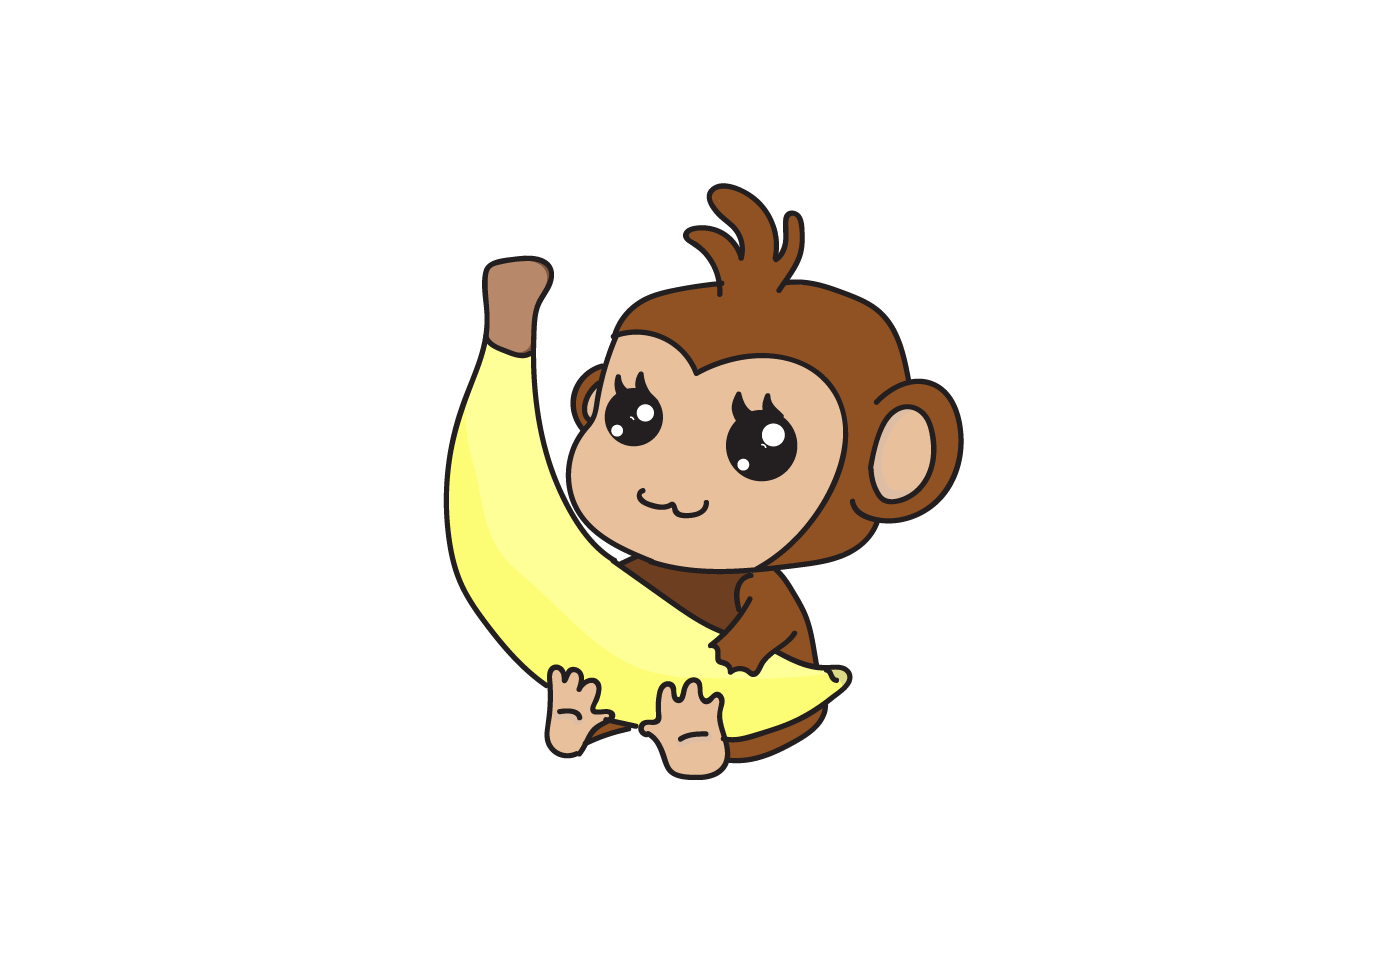 chibi monkey vector cartoon download free vector art zoo clip art black and white zoo clipart cartoon